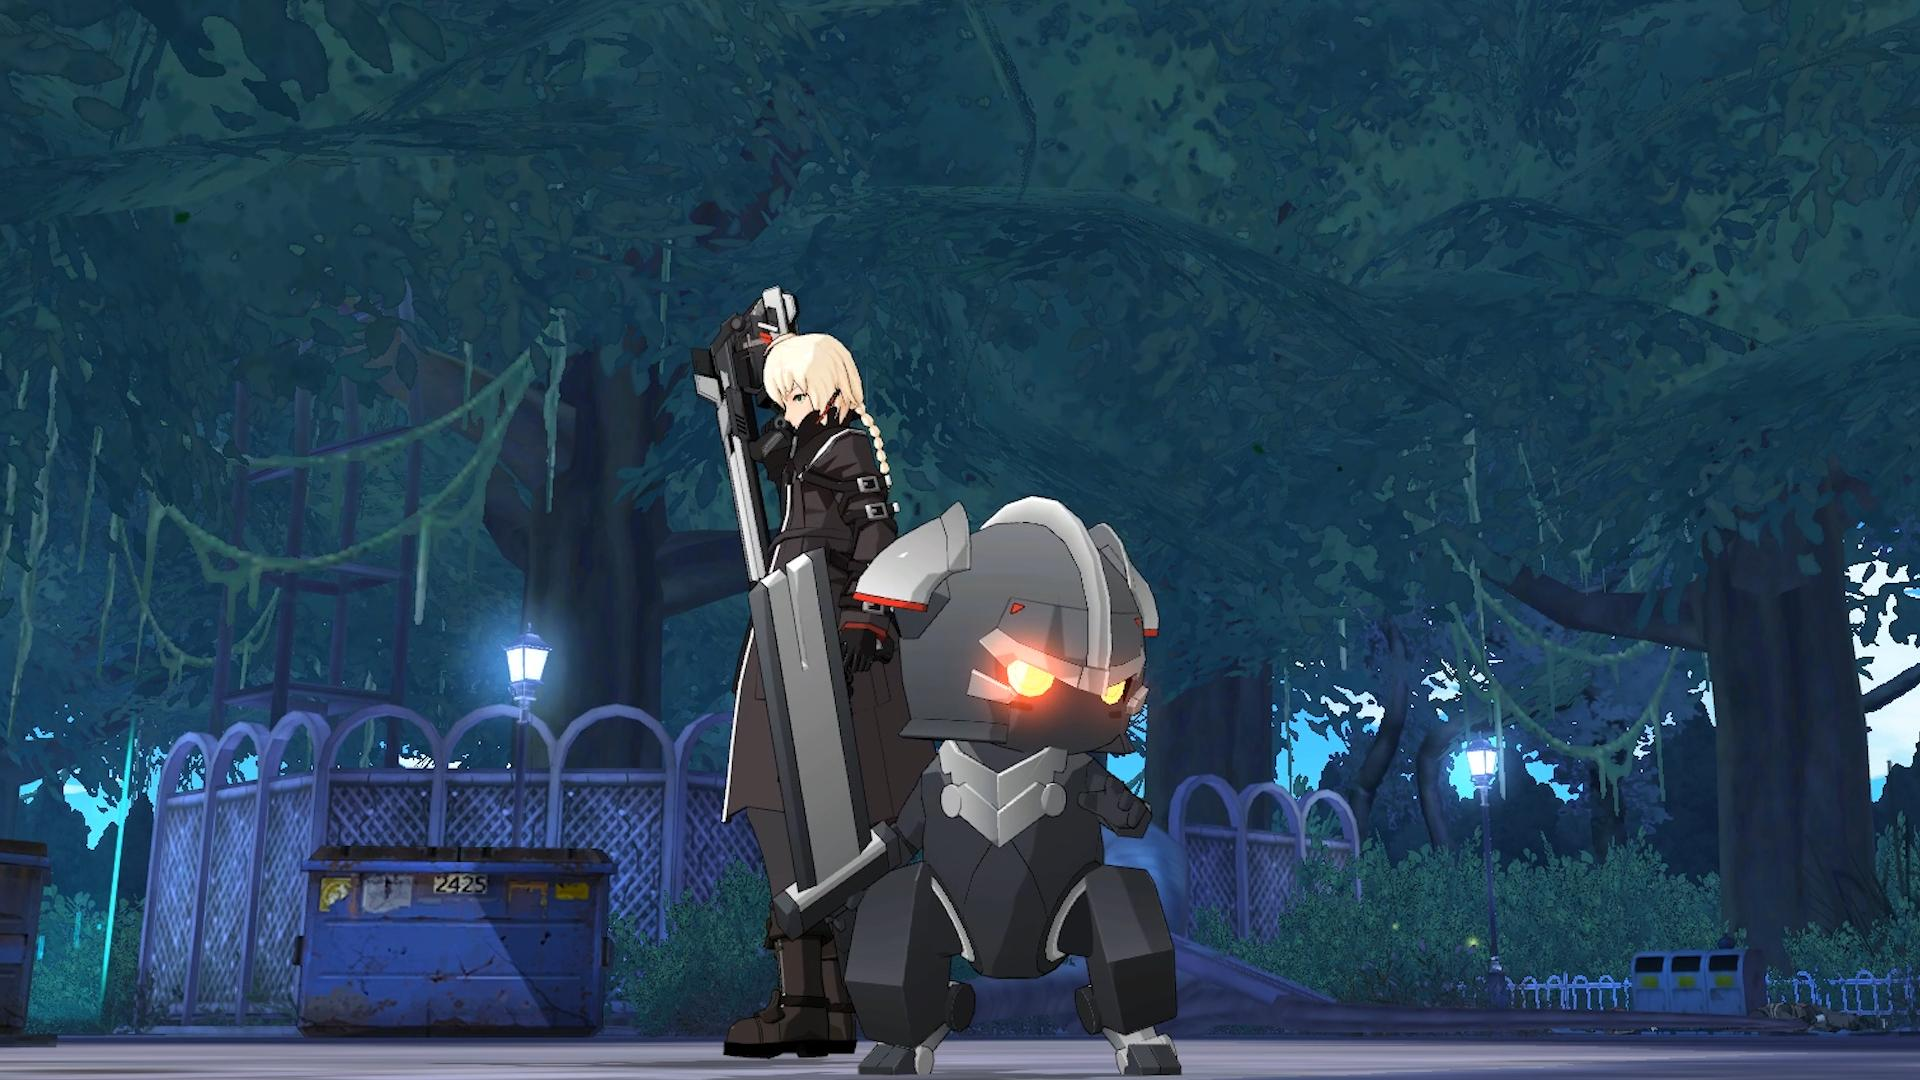 Erwin Gun Jazz gets his class expansion in SoulWorker, free